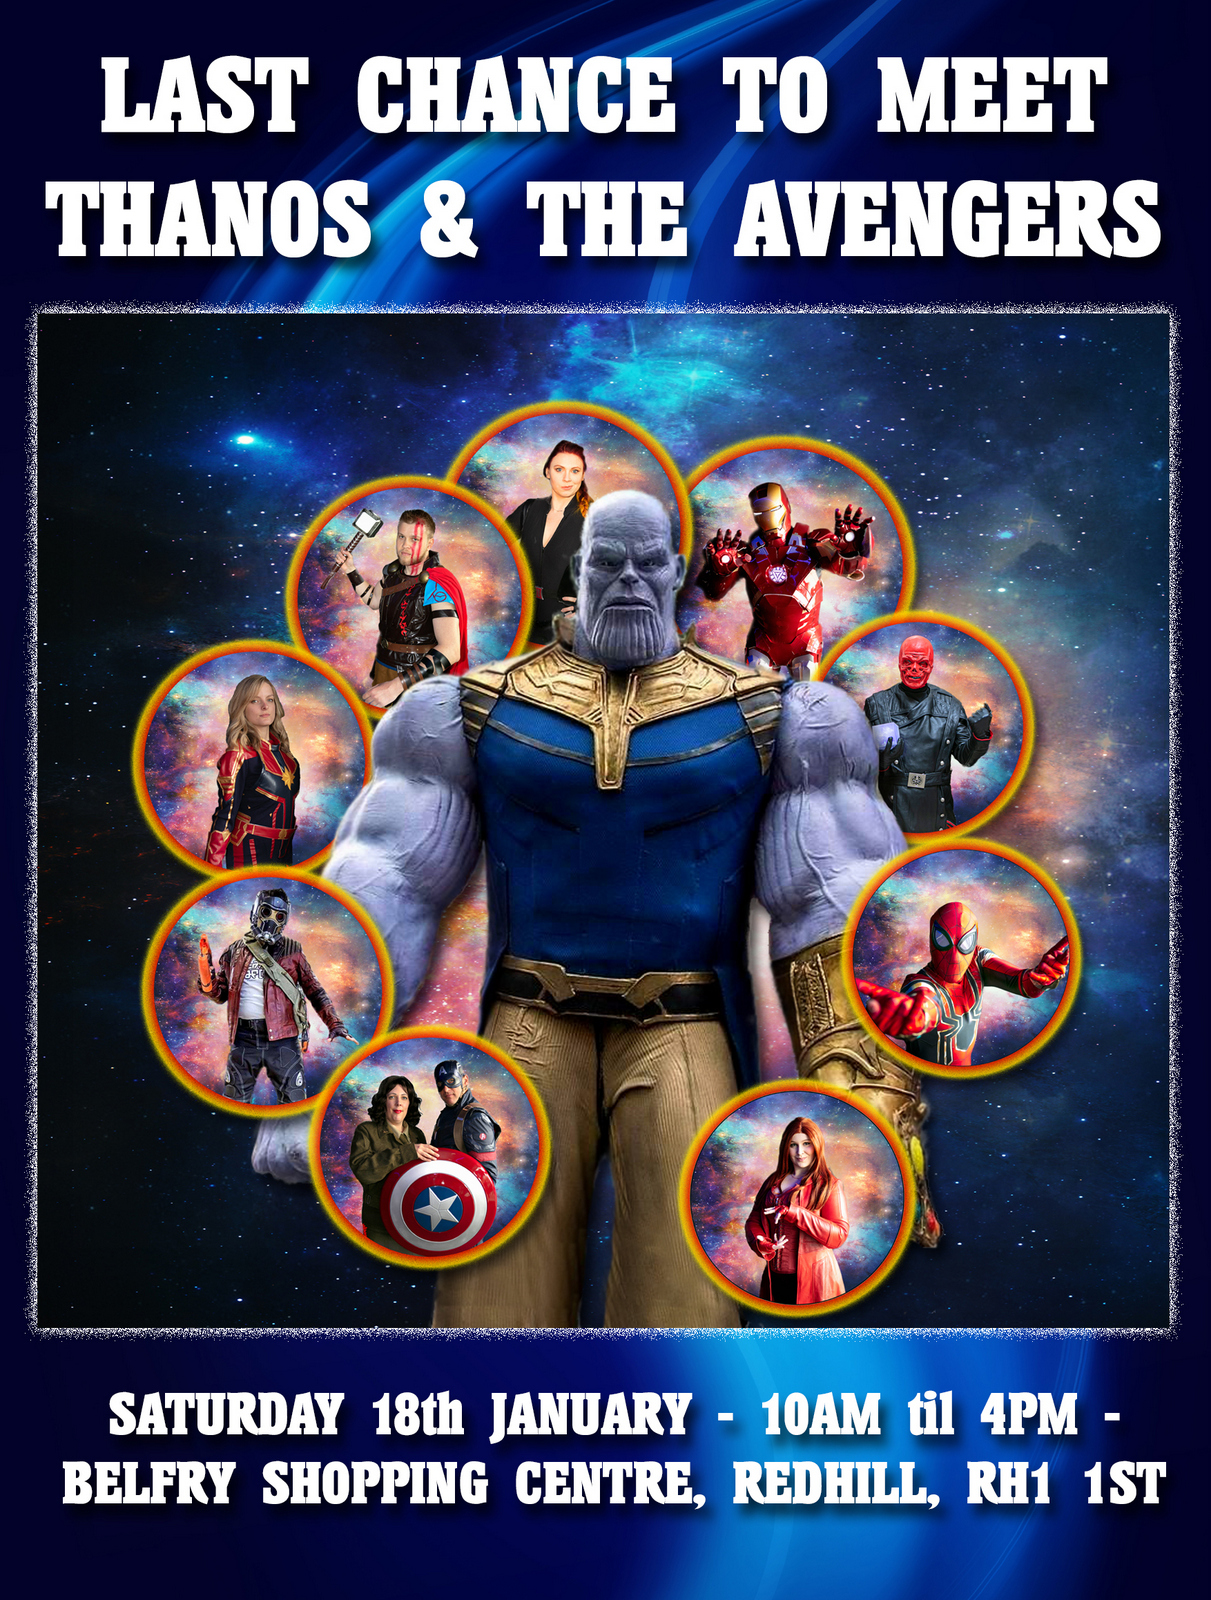 aspergers, autism, autism acceptance, Autism all stars, autism awareness, autism parents, autism-friendly, belfry shopping centre, disability, diversity, events, parenting, redhill, special needs, surrey, Thanos, The Avengers, Marvel cosplay, MCU,